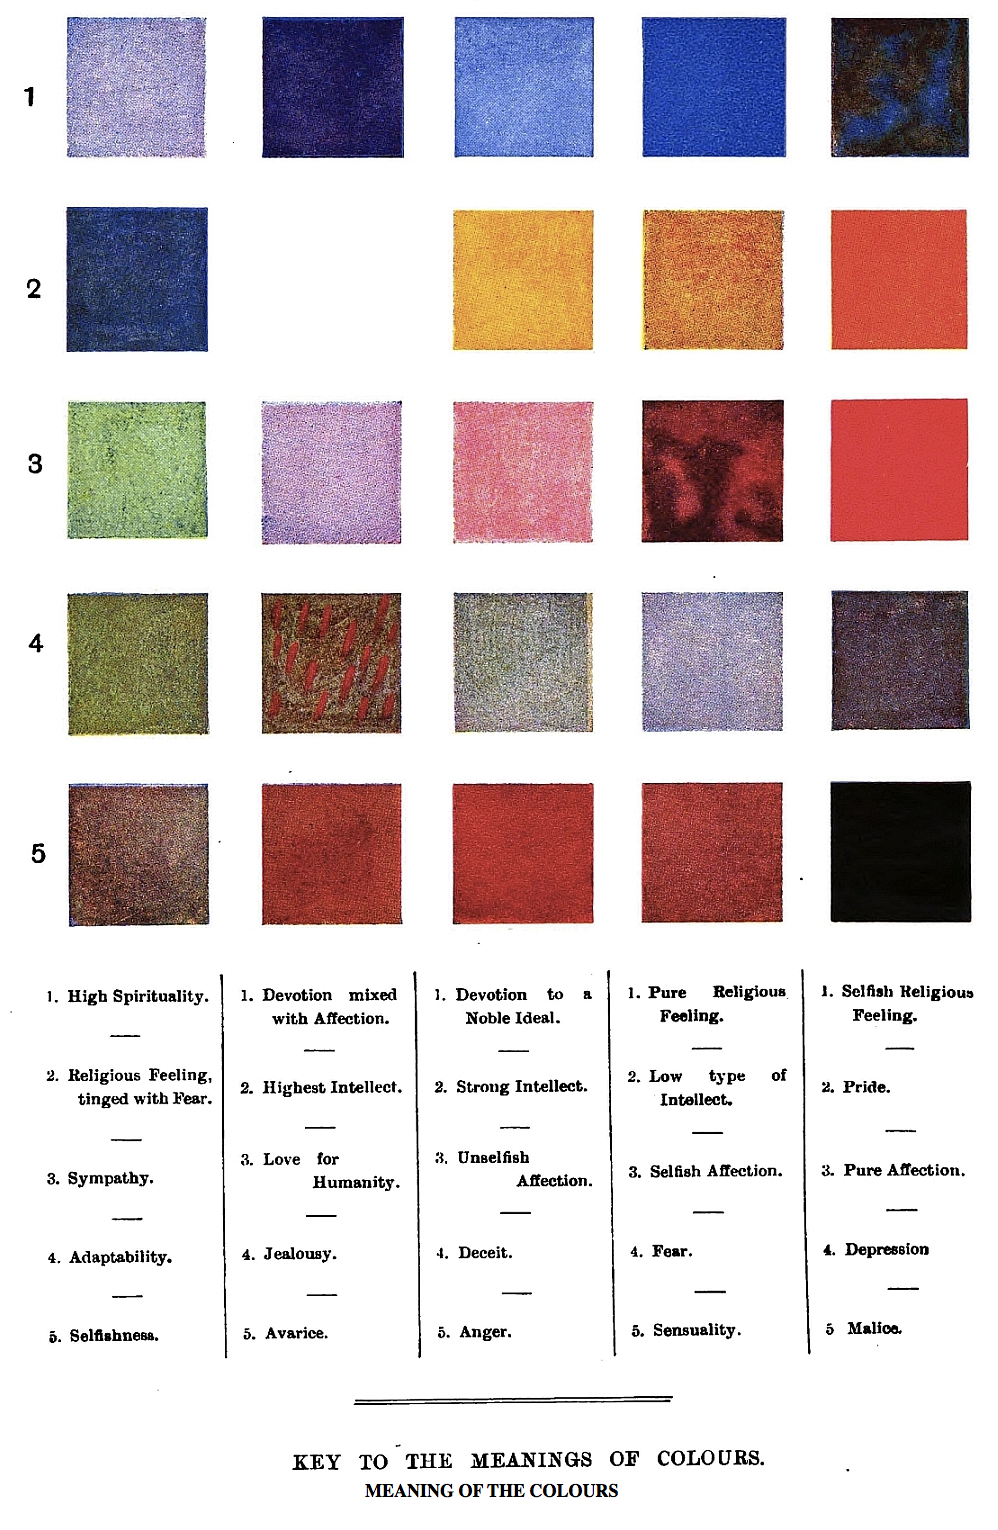 'Key to the Meanings of Colours' from Besant & Leadbeater's 1901 Thought-Forms